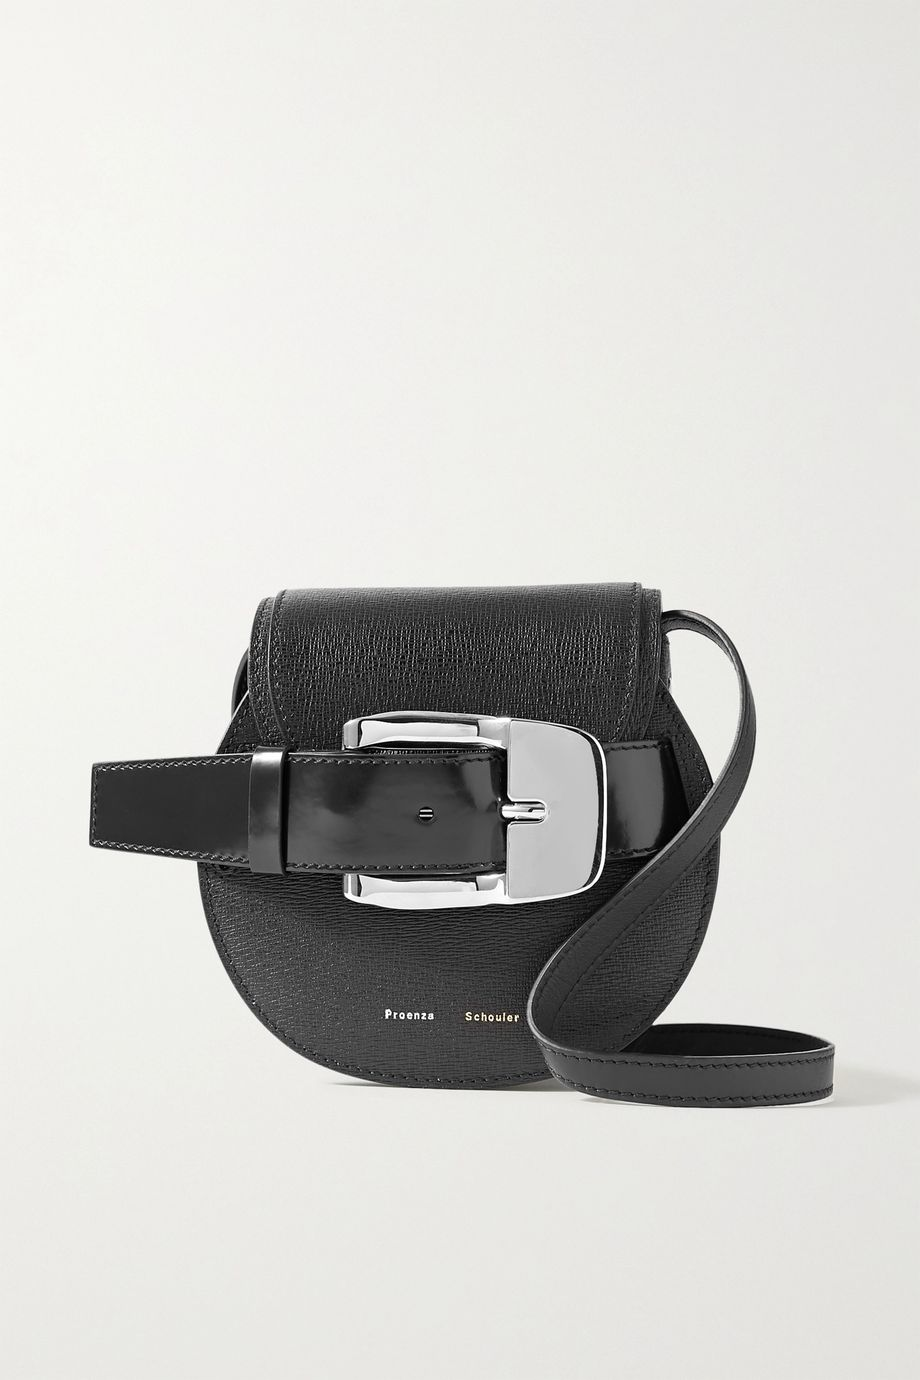 Proenza Schouler Buckle-embellished textured and patent-leather shoulder bag